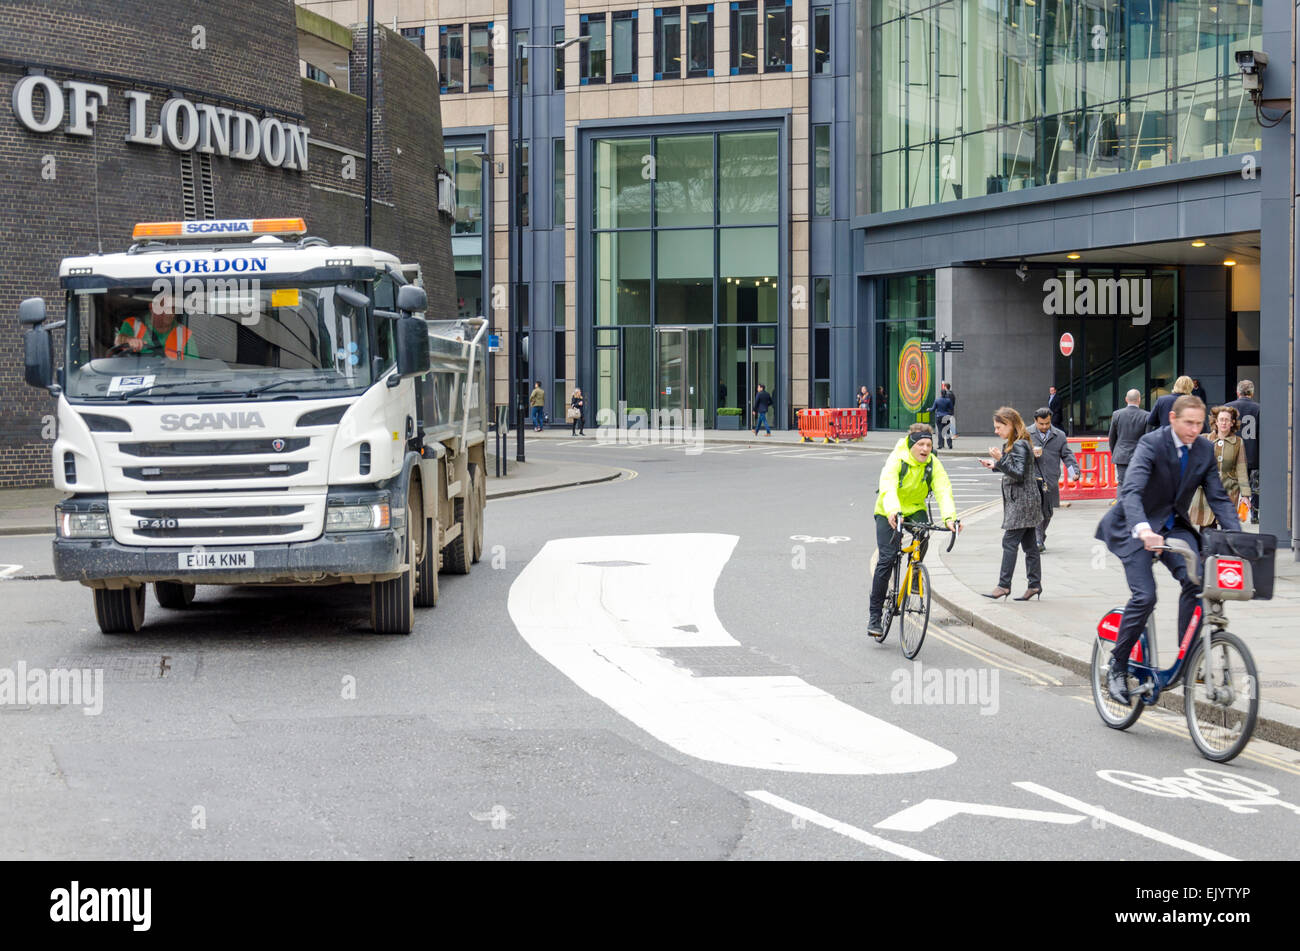 Cycle safety road markings scheme which separates cyclists and traffic, London, UK - Stock Image